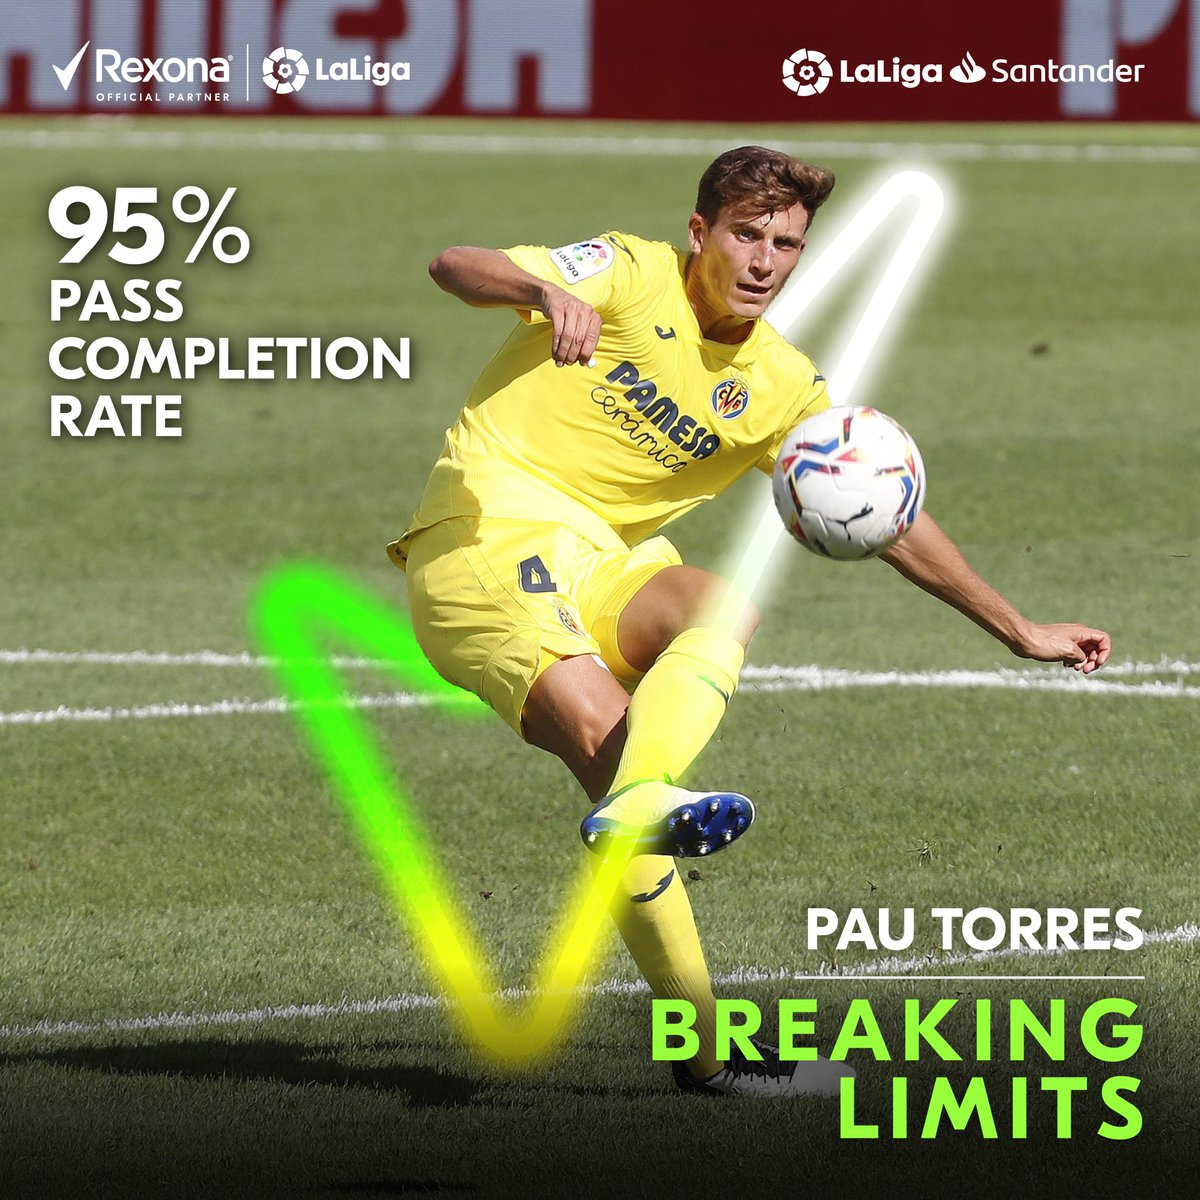 Precision at its finest! 🎯✨  ✅ @Eng_Villarreal star, @pauttorres, achieved an astounding 95% pass completion rate in the Villarreal vs Real Madrid game!  #BreakingLimits #MoveYourWay #Rexona https://t.co/msEqantH1r